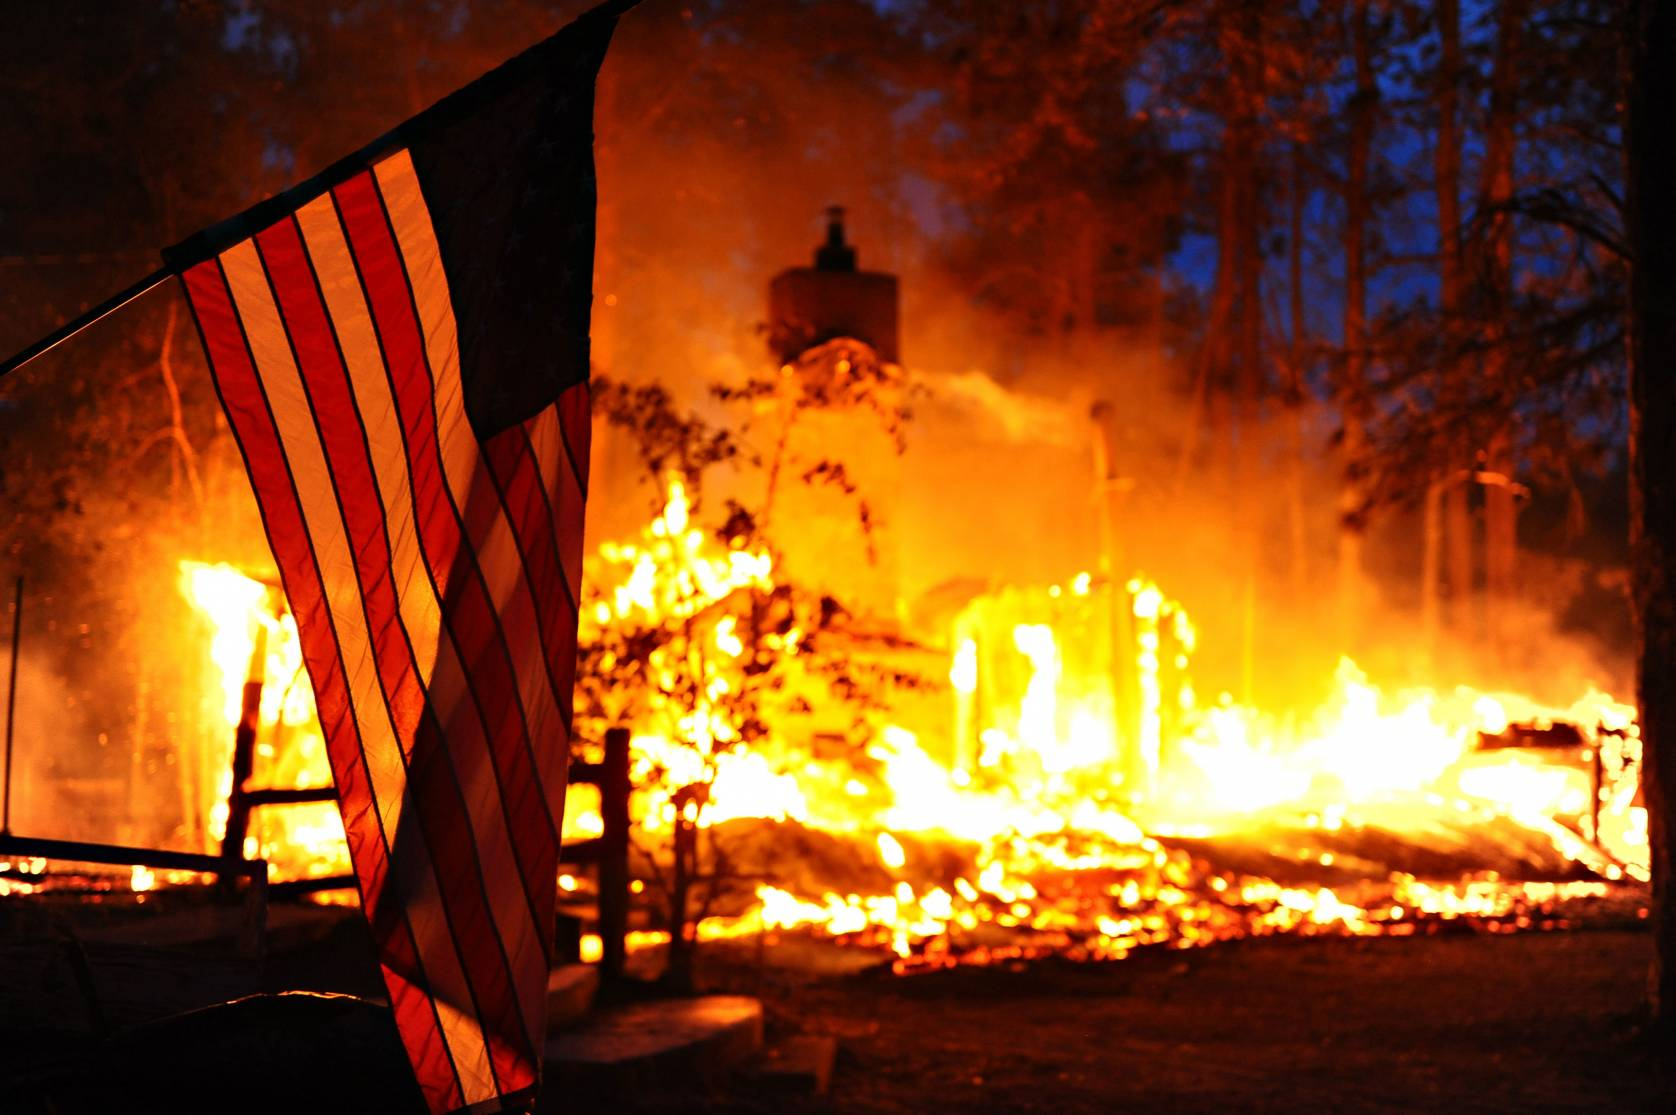 American flag in forest fire